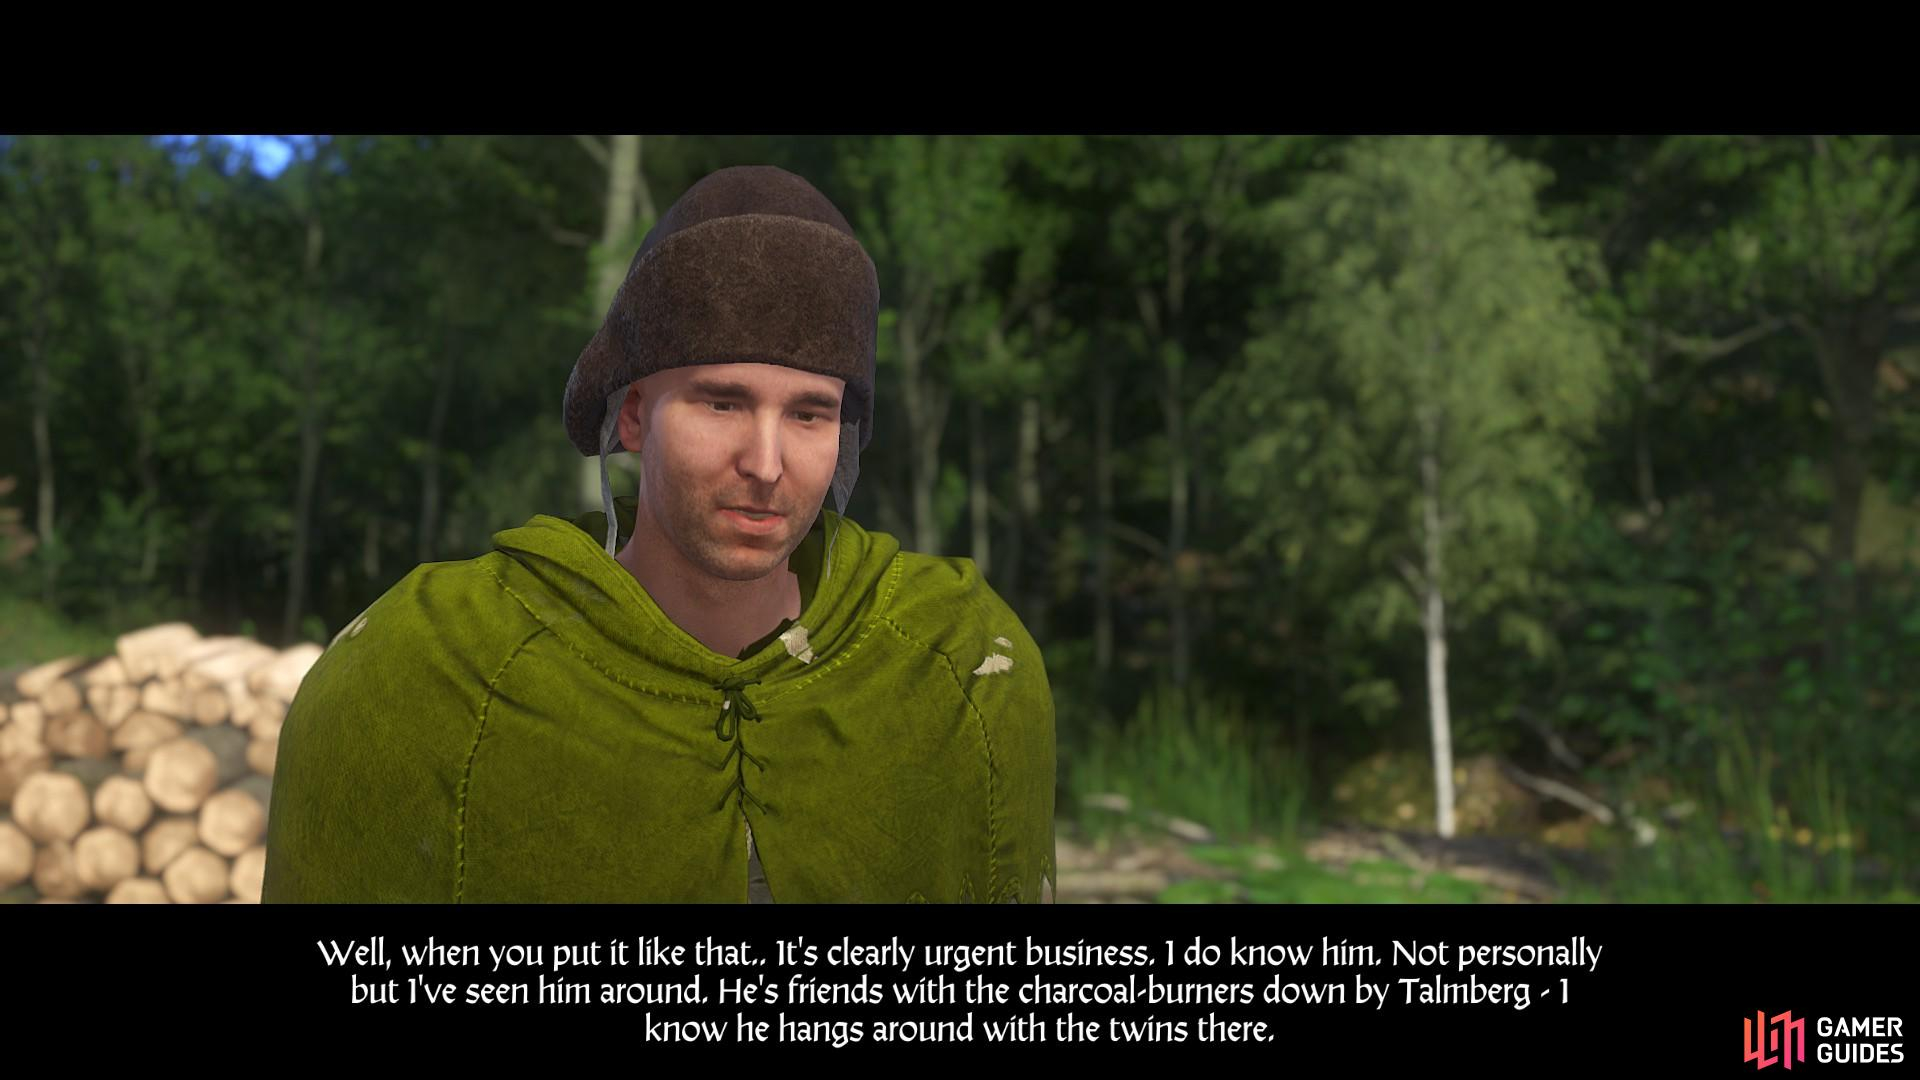 Speak with the charcoal-burner in the camp north of Neuhof and convince him to tell you more.